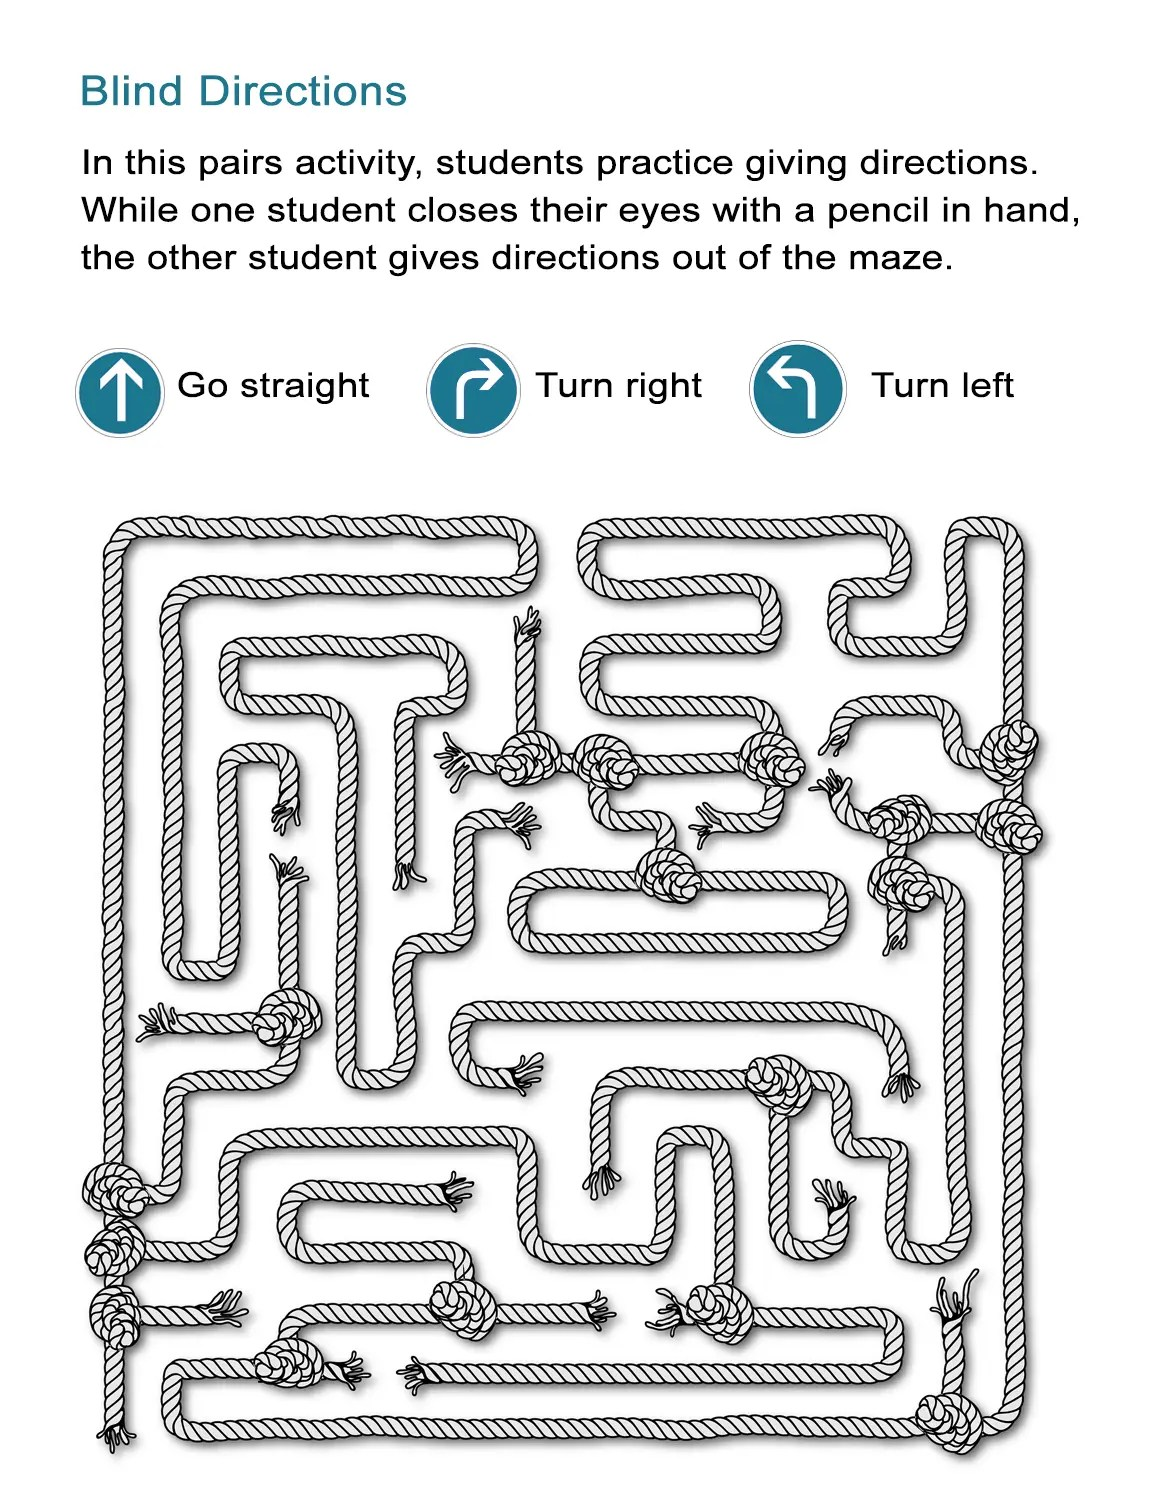 Maze Directions Worksheet Can You Advance Through The Maze